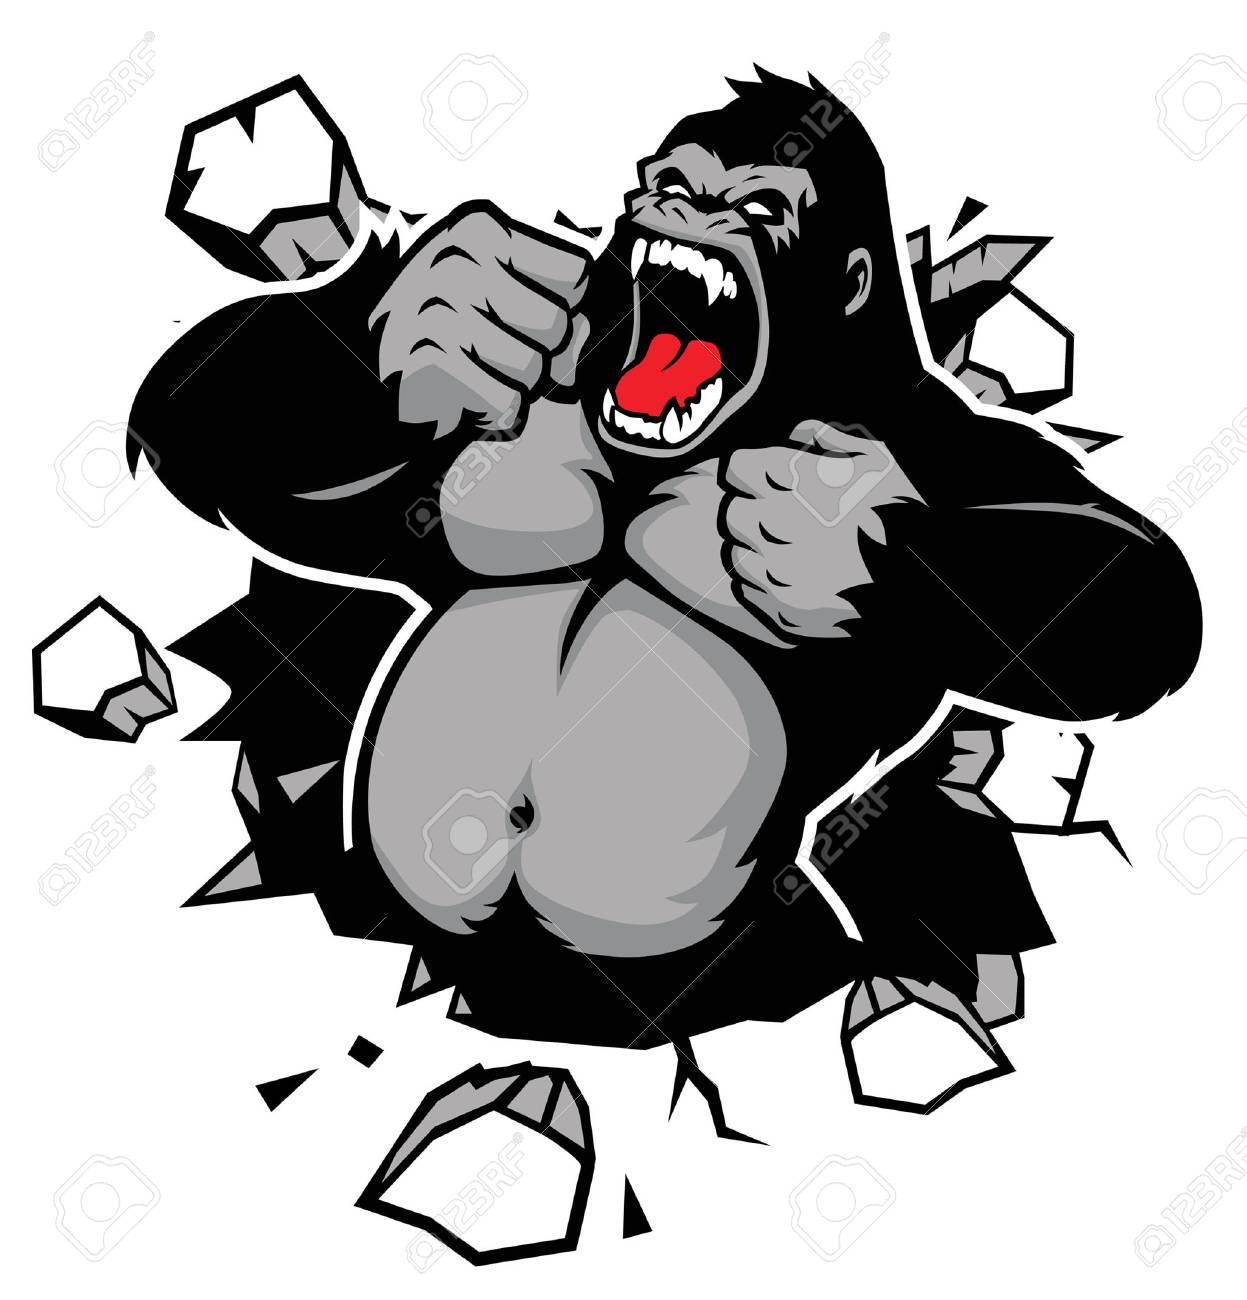 angry of gorilla breaking the wall - 92914466